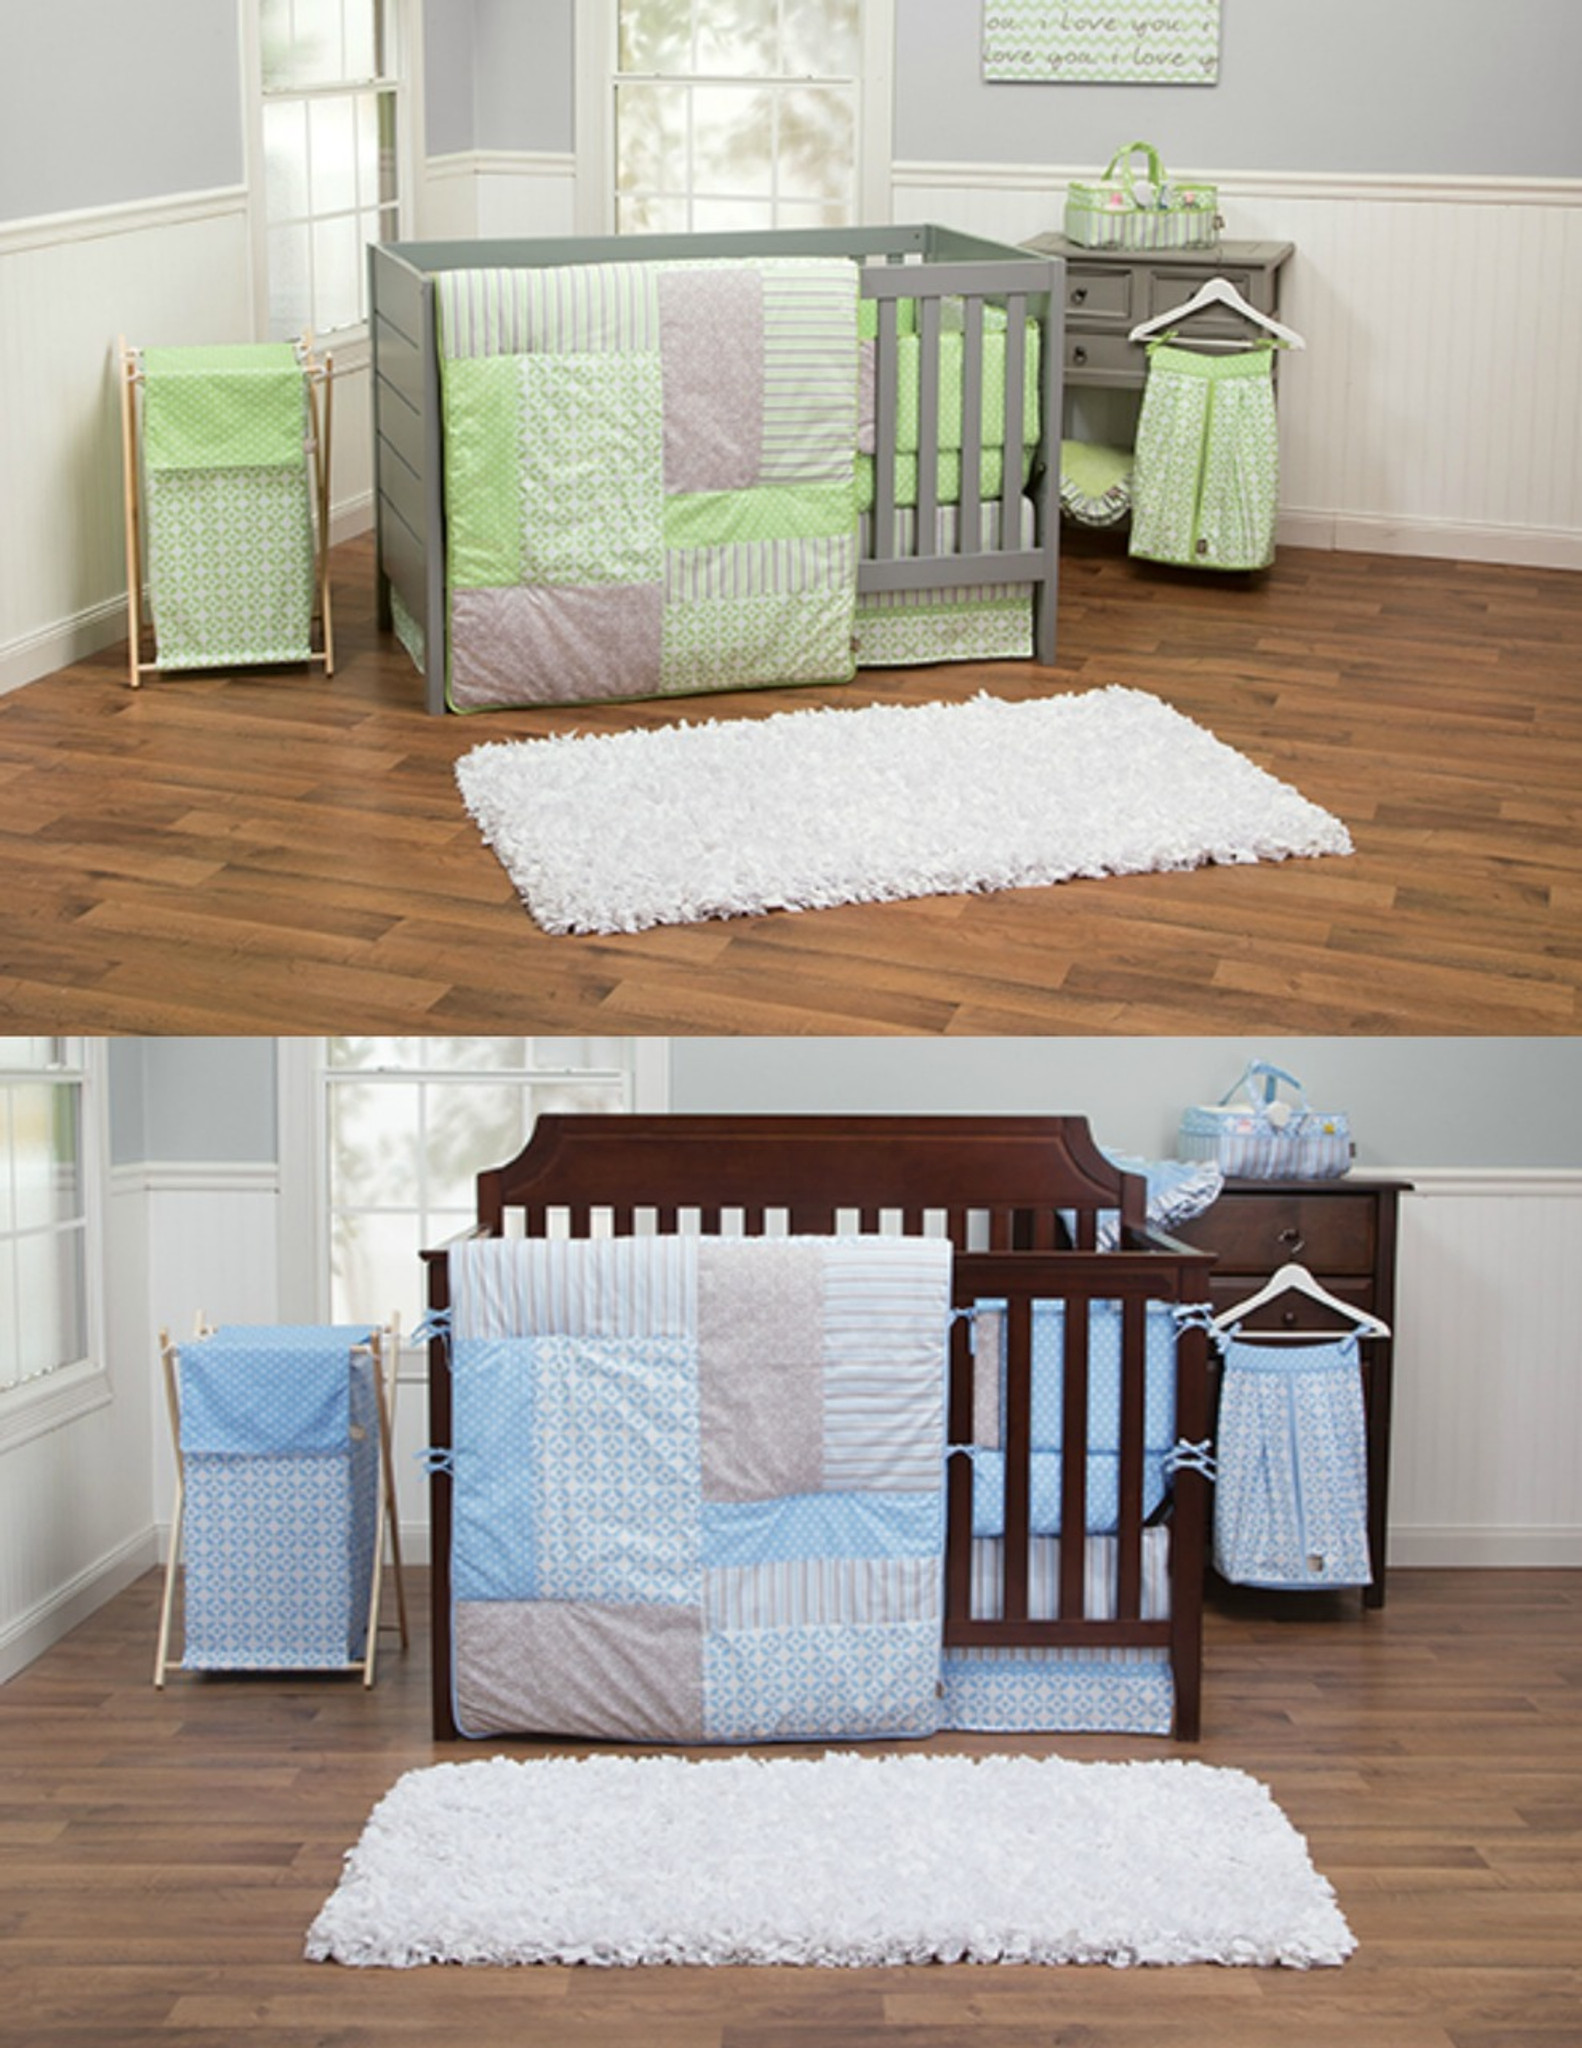 Blue And Green Nursery Bedding Sets For Twins